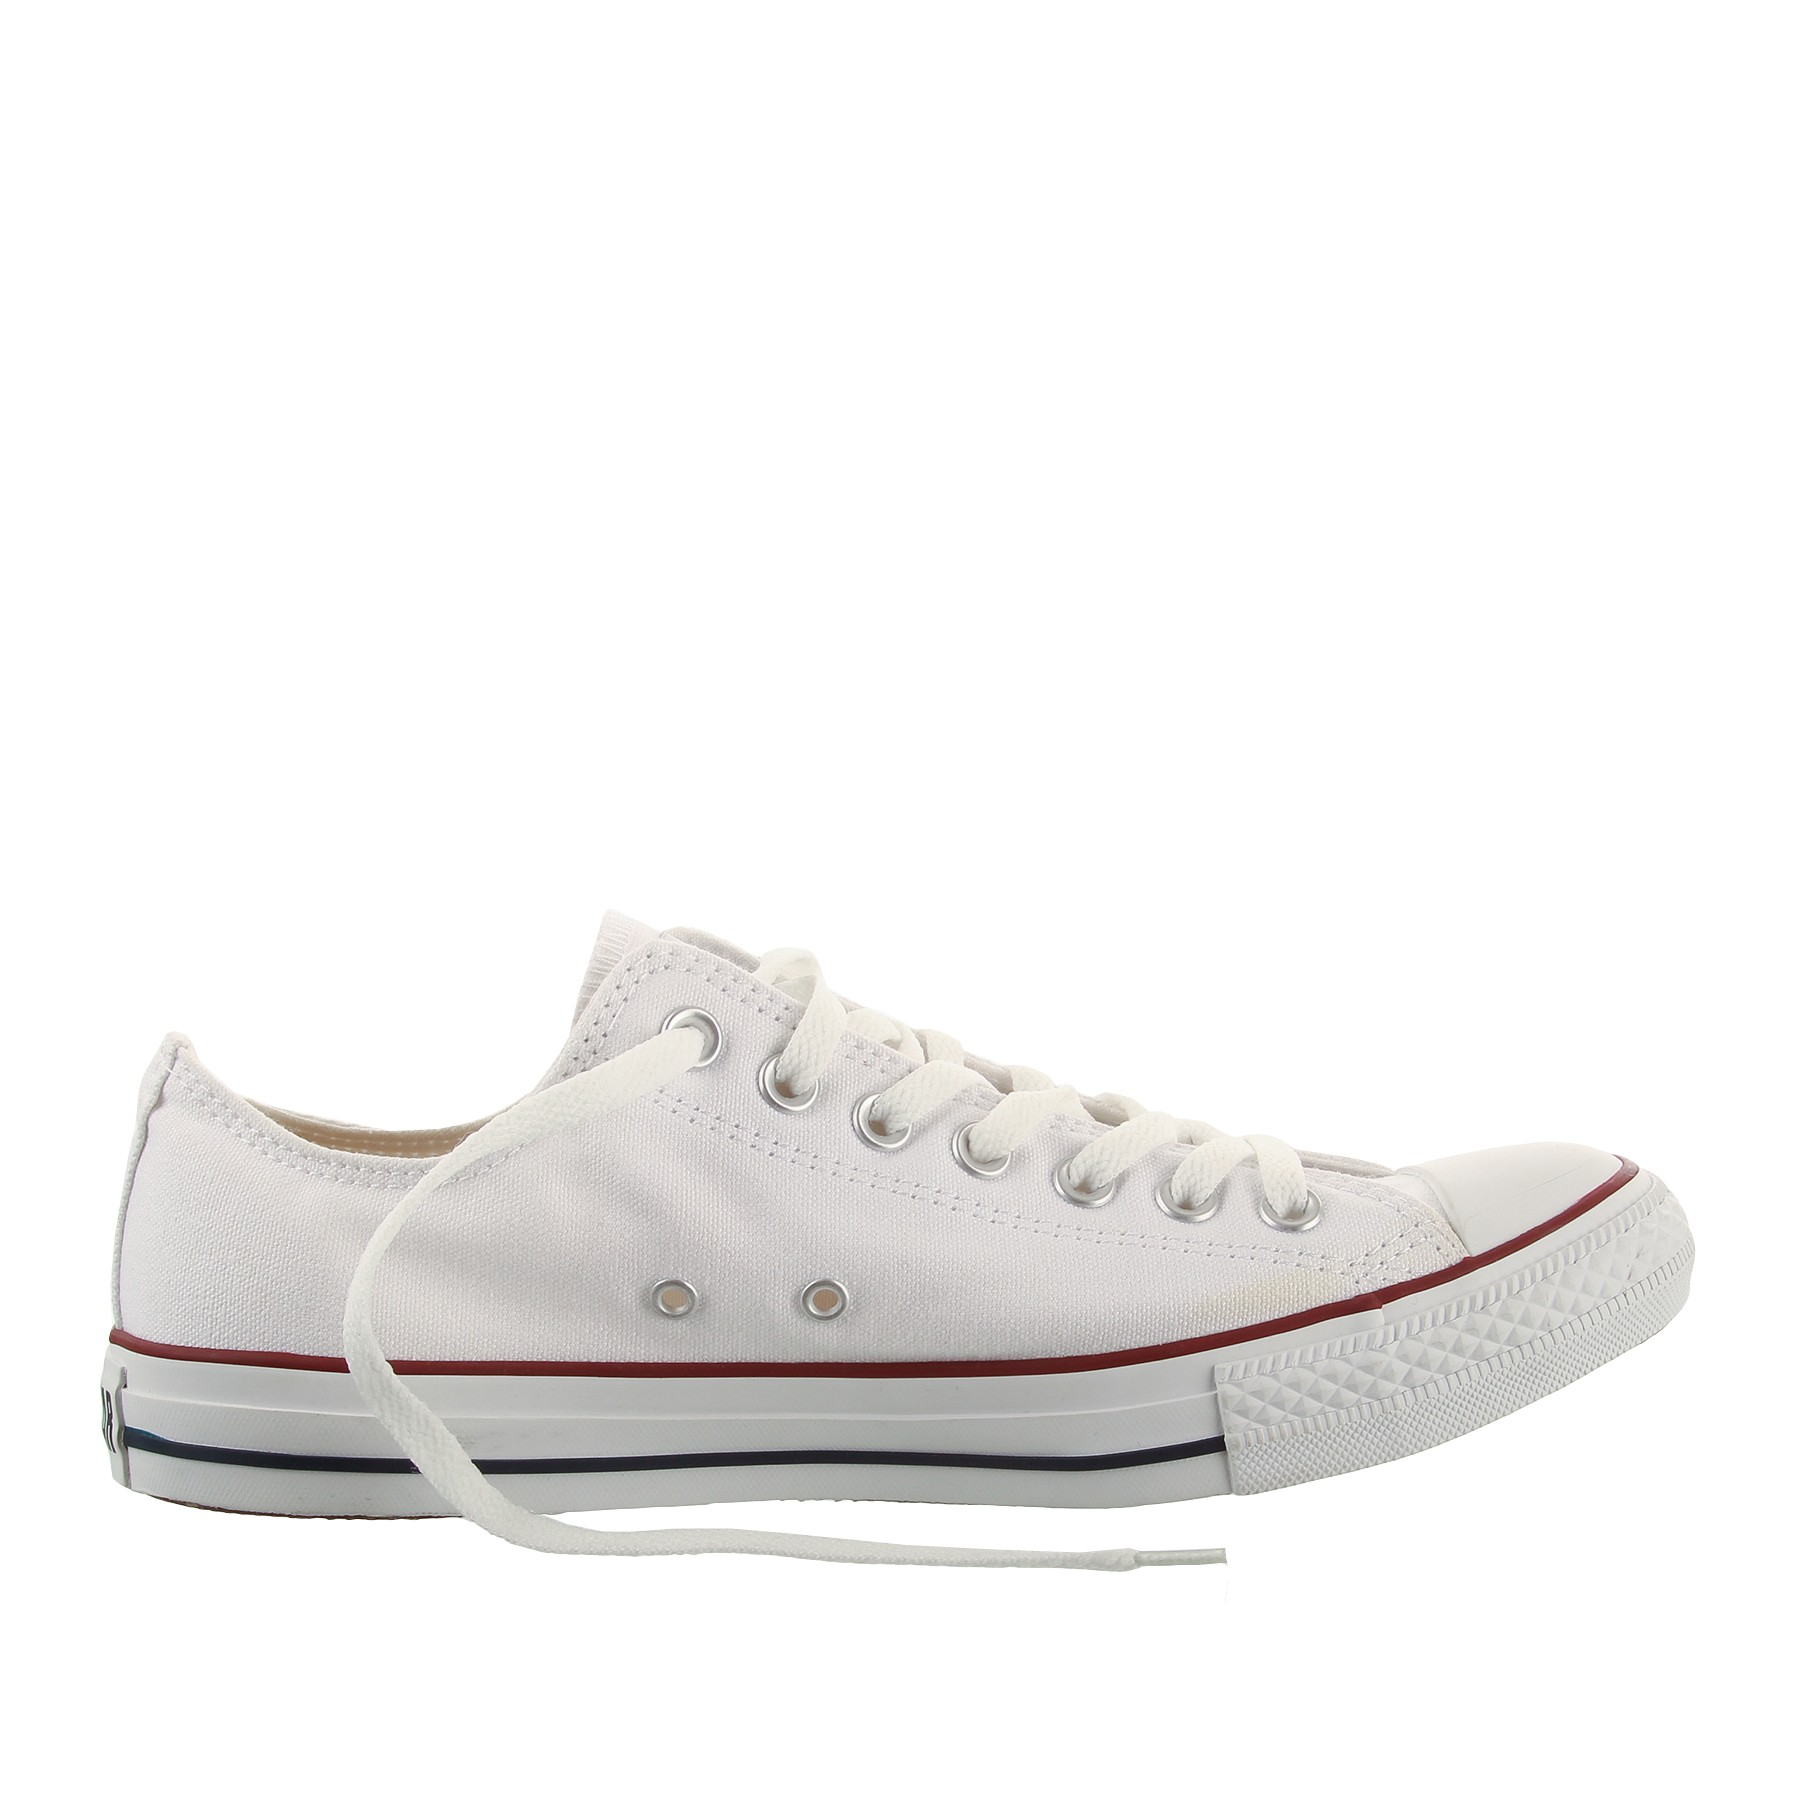 M7652 CT CHUCK TAYLOR AS CORE/OPTICAL WHITE Bild https://cdn03.plentymarkets.com/zsy4vjx32p87/item/images/4271/full/M7652-ama-03.JPG